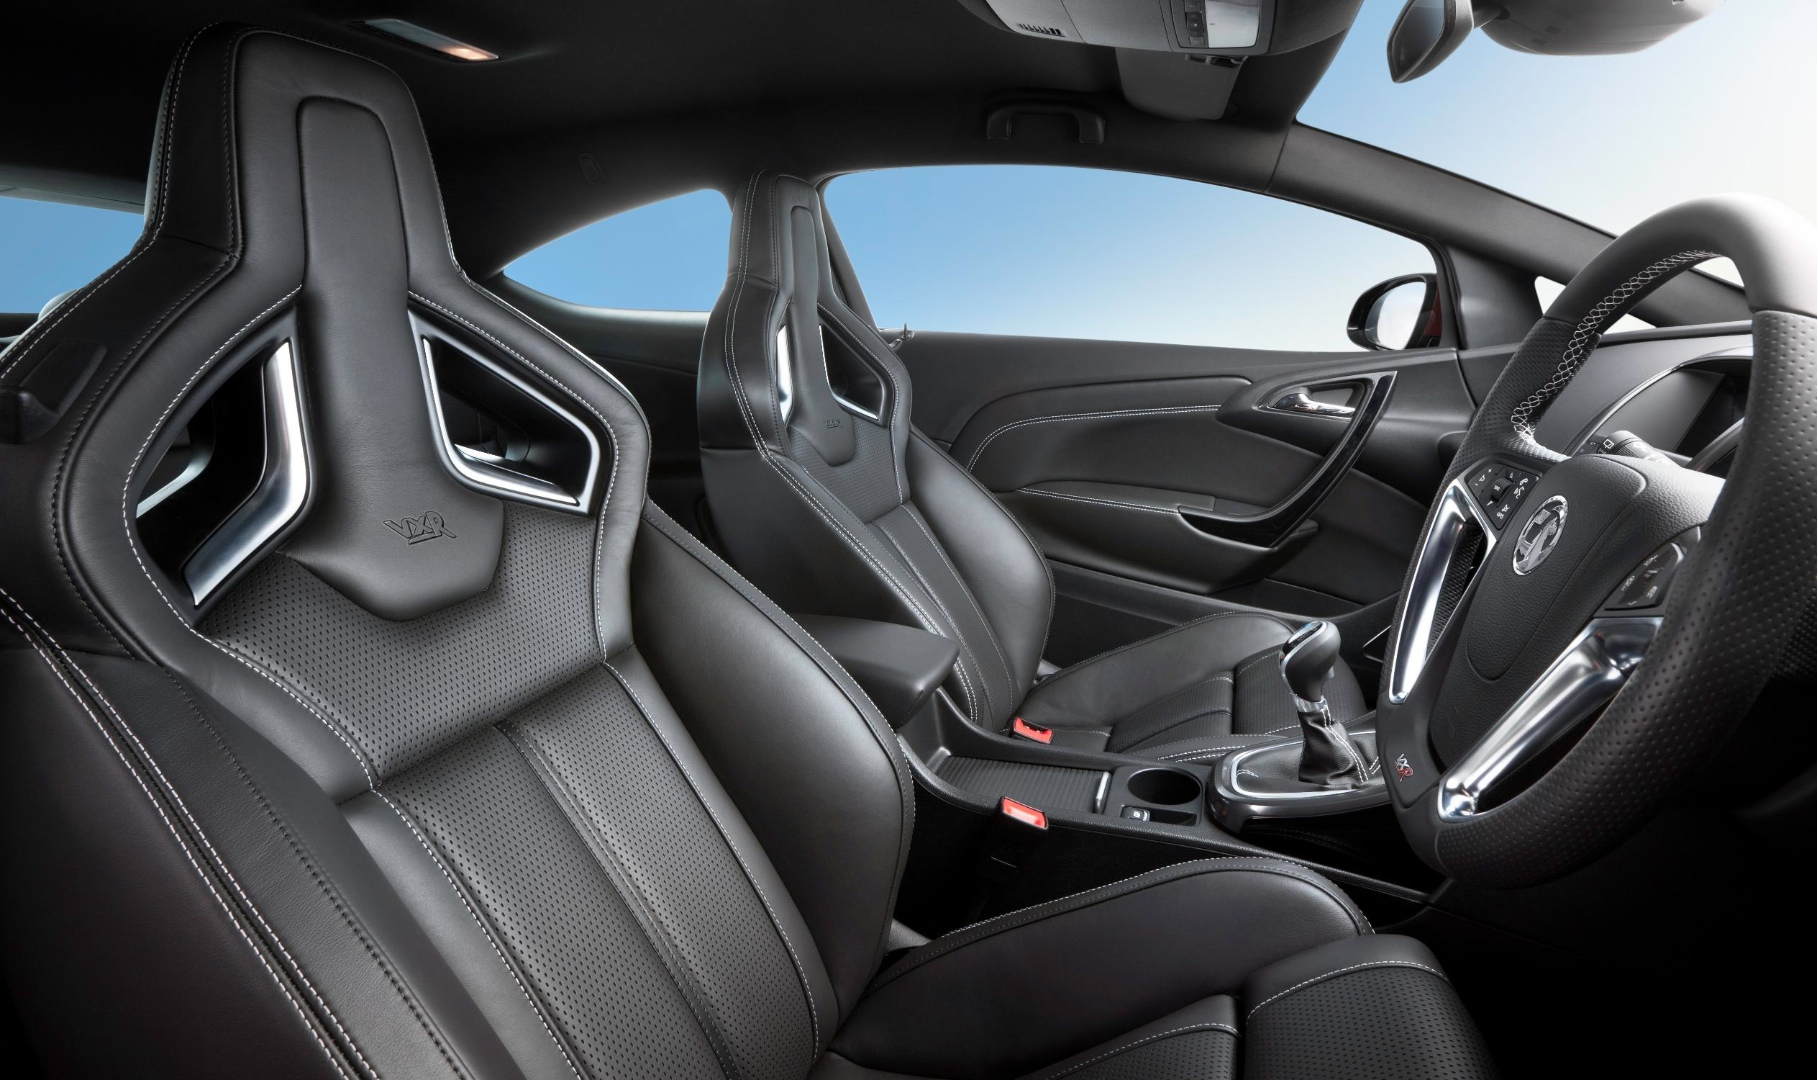 Vauxhall astra vxr opel astra opc seats explained for Interieur astra h opc